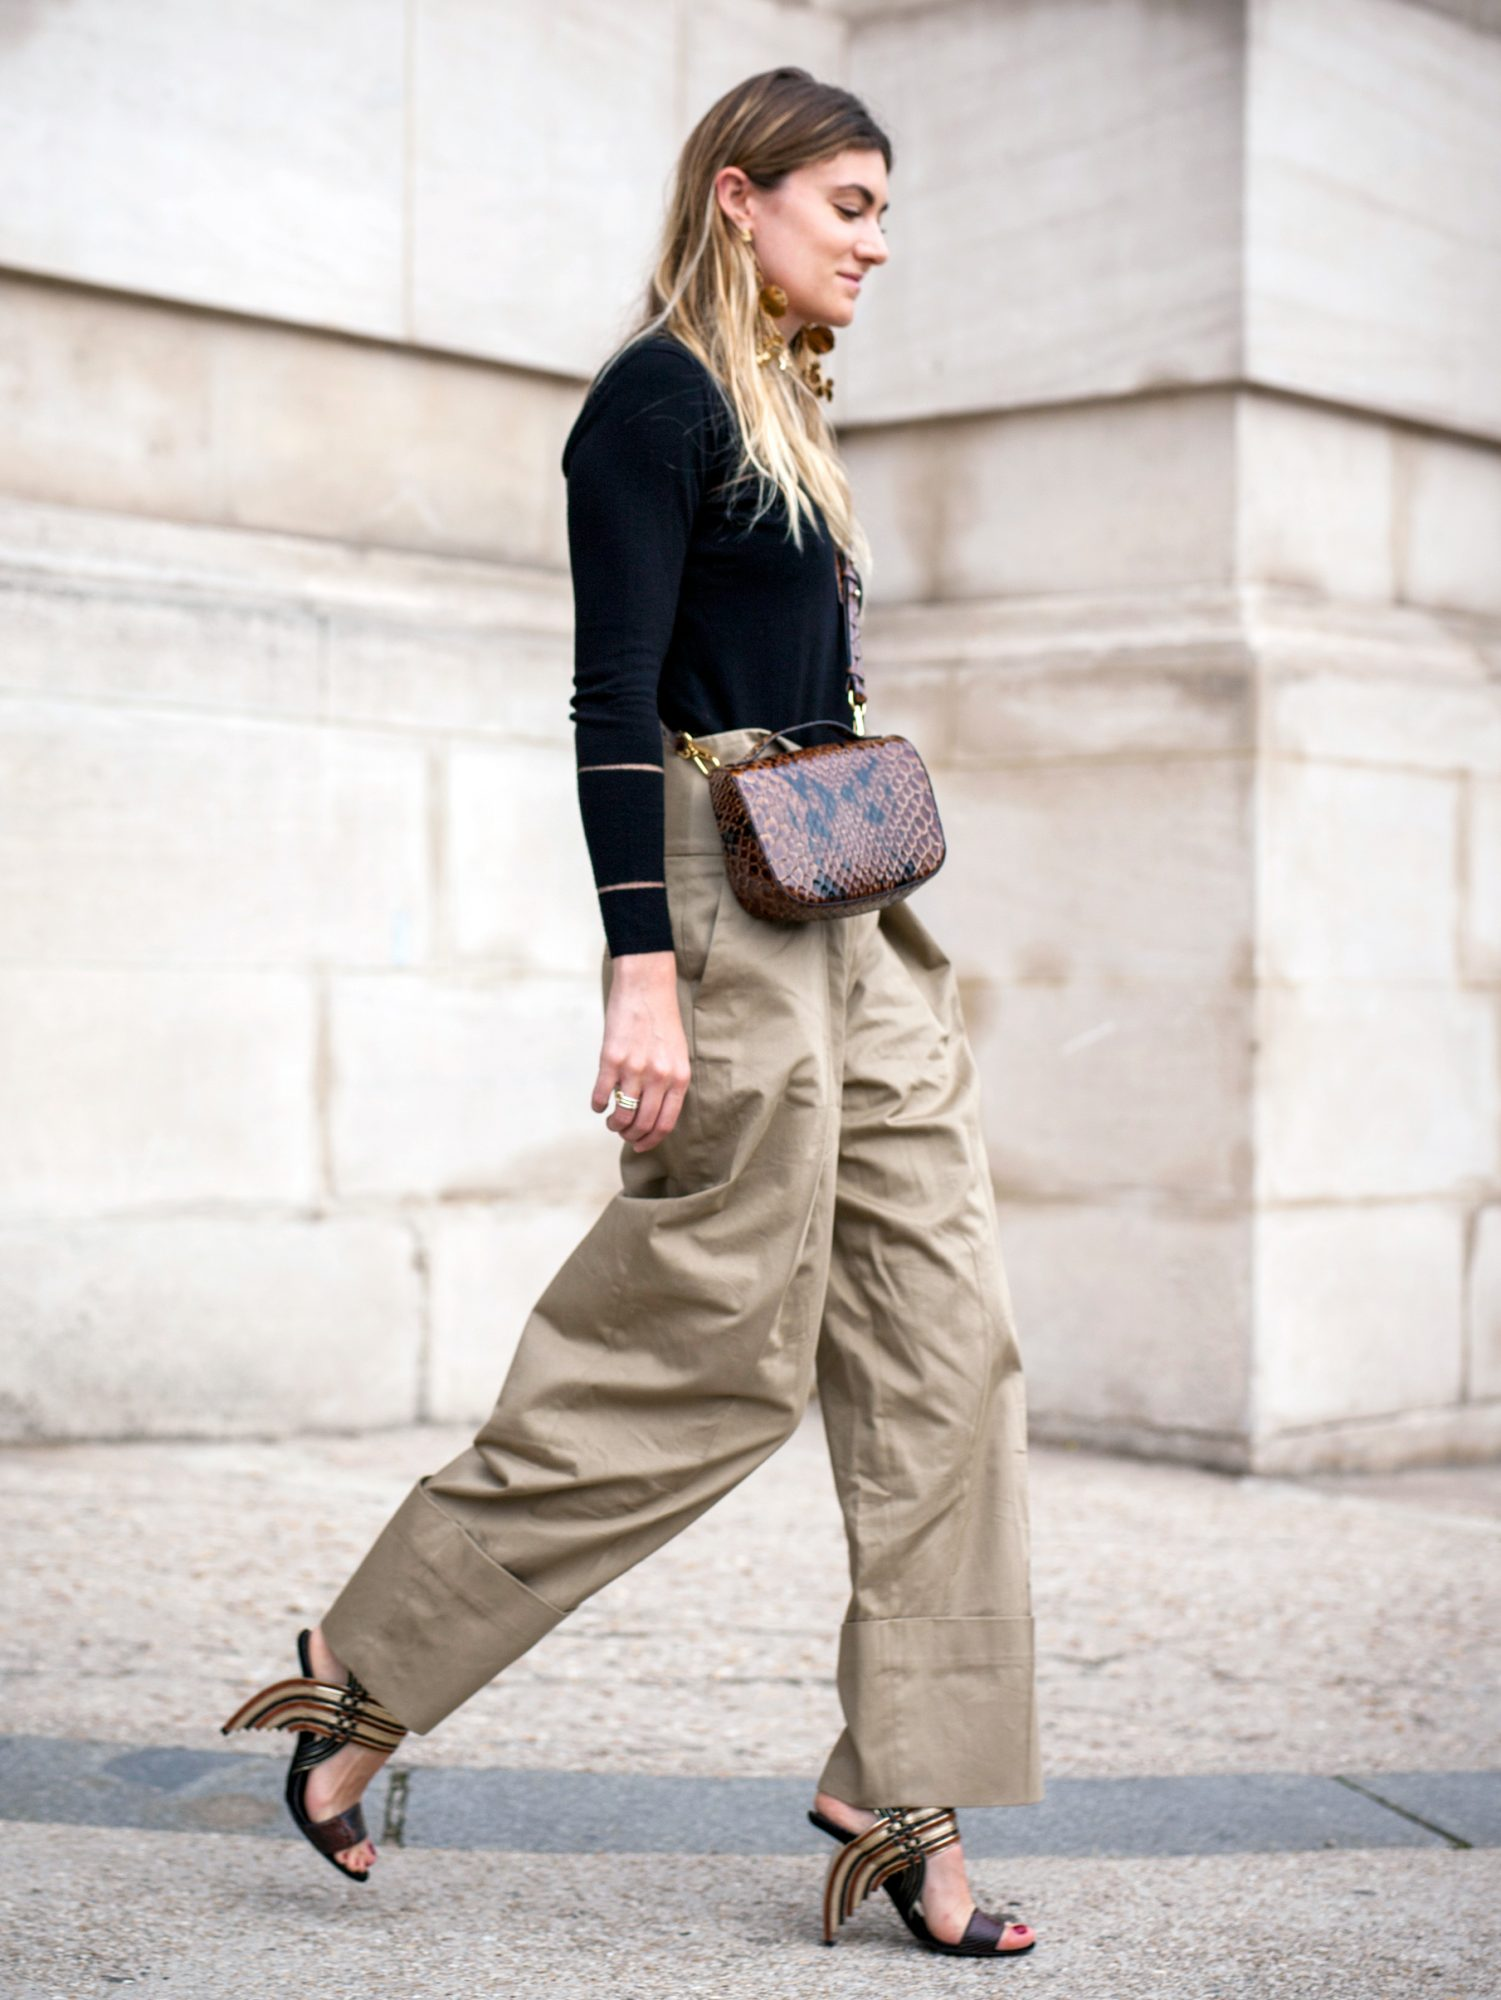 15 Pieces You Need To Build The Perfect Utilitarian Wardrobe